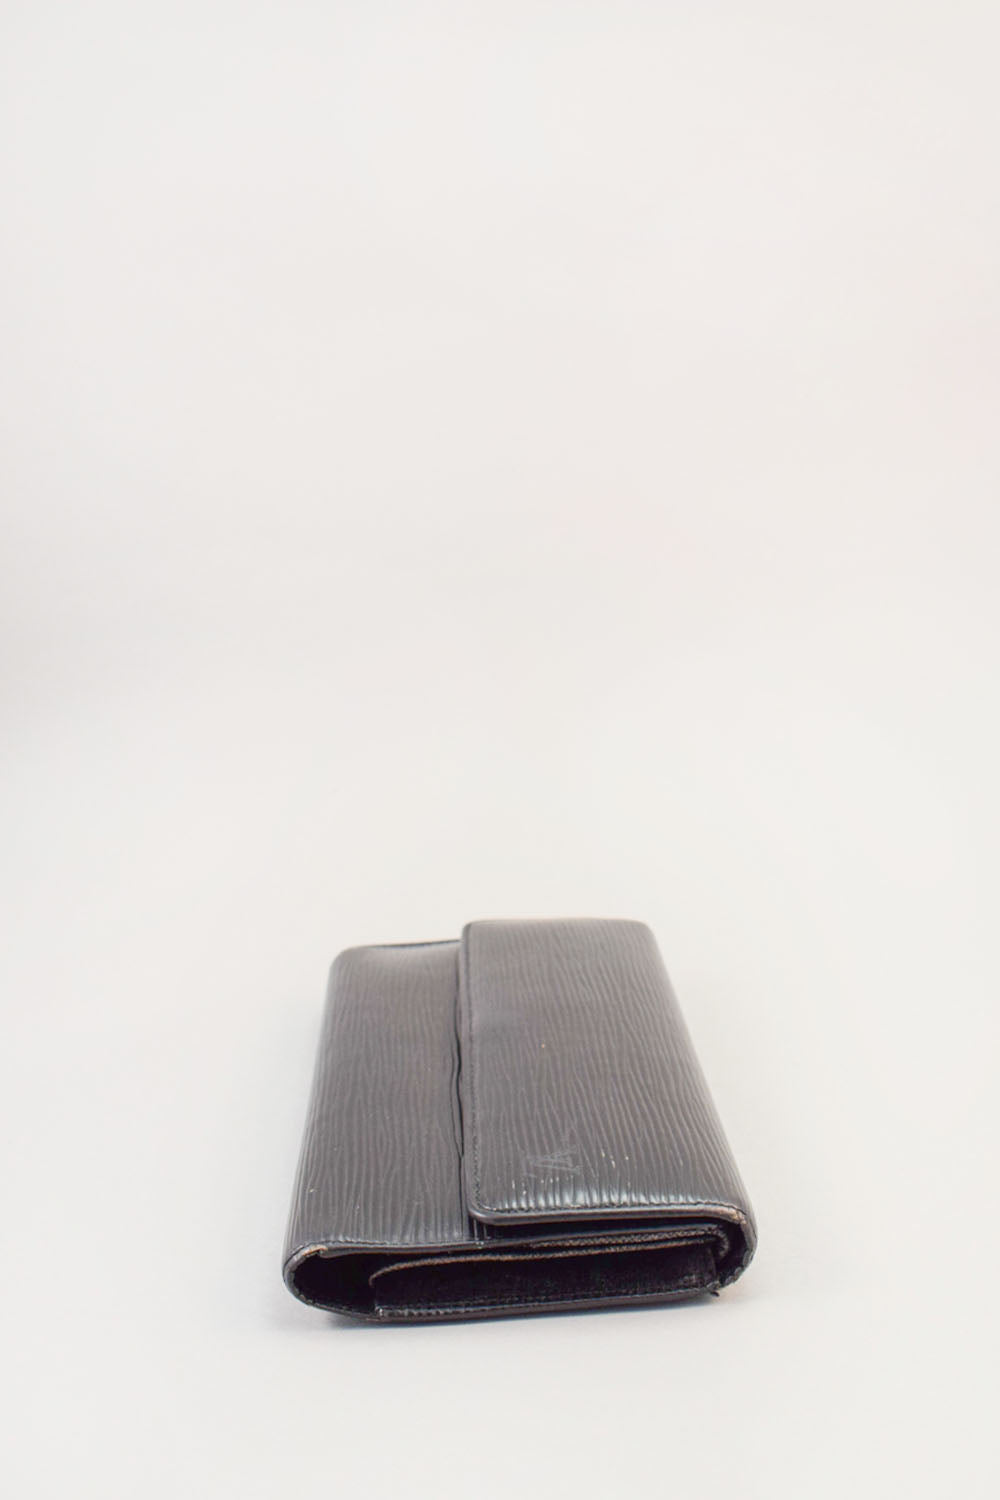 Louis Vuitton Black Epi Wallet